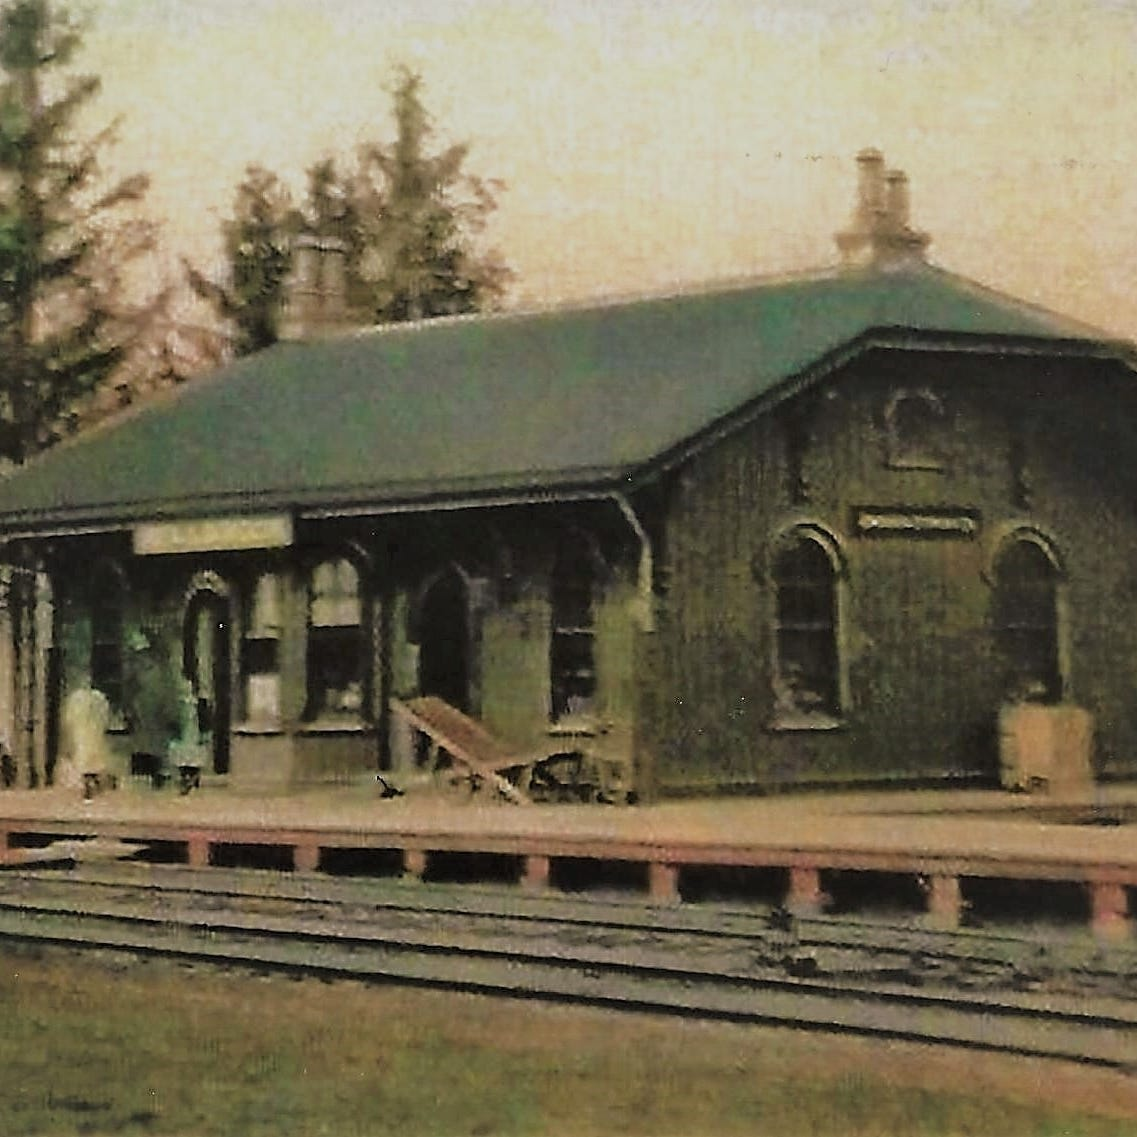 First came the railroad station, then came Millbrook